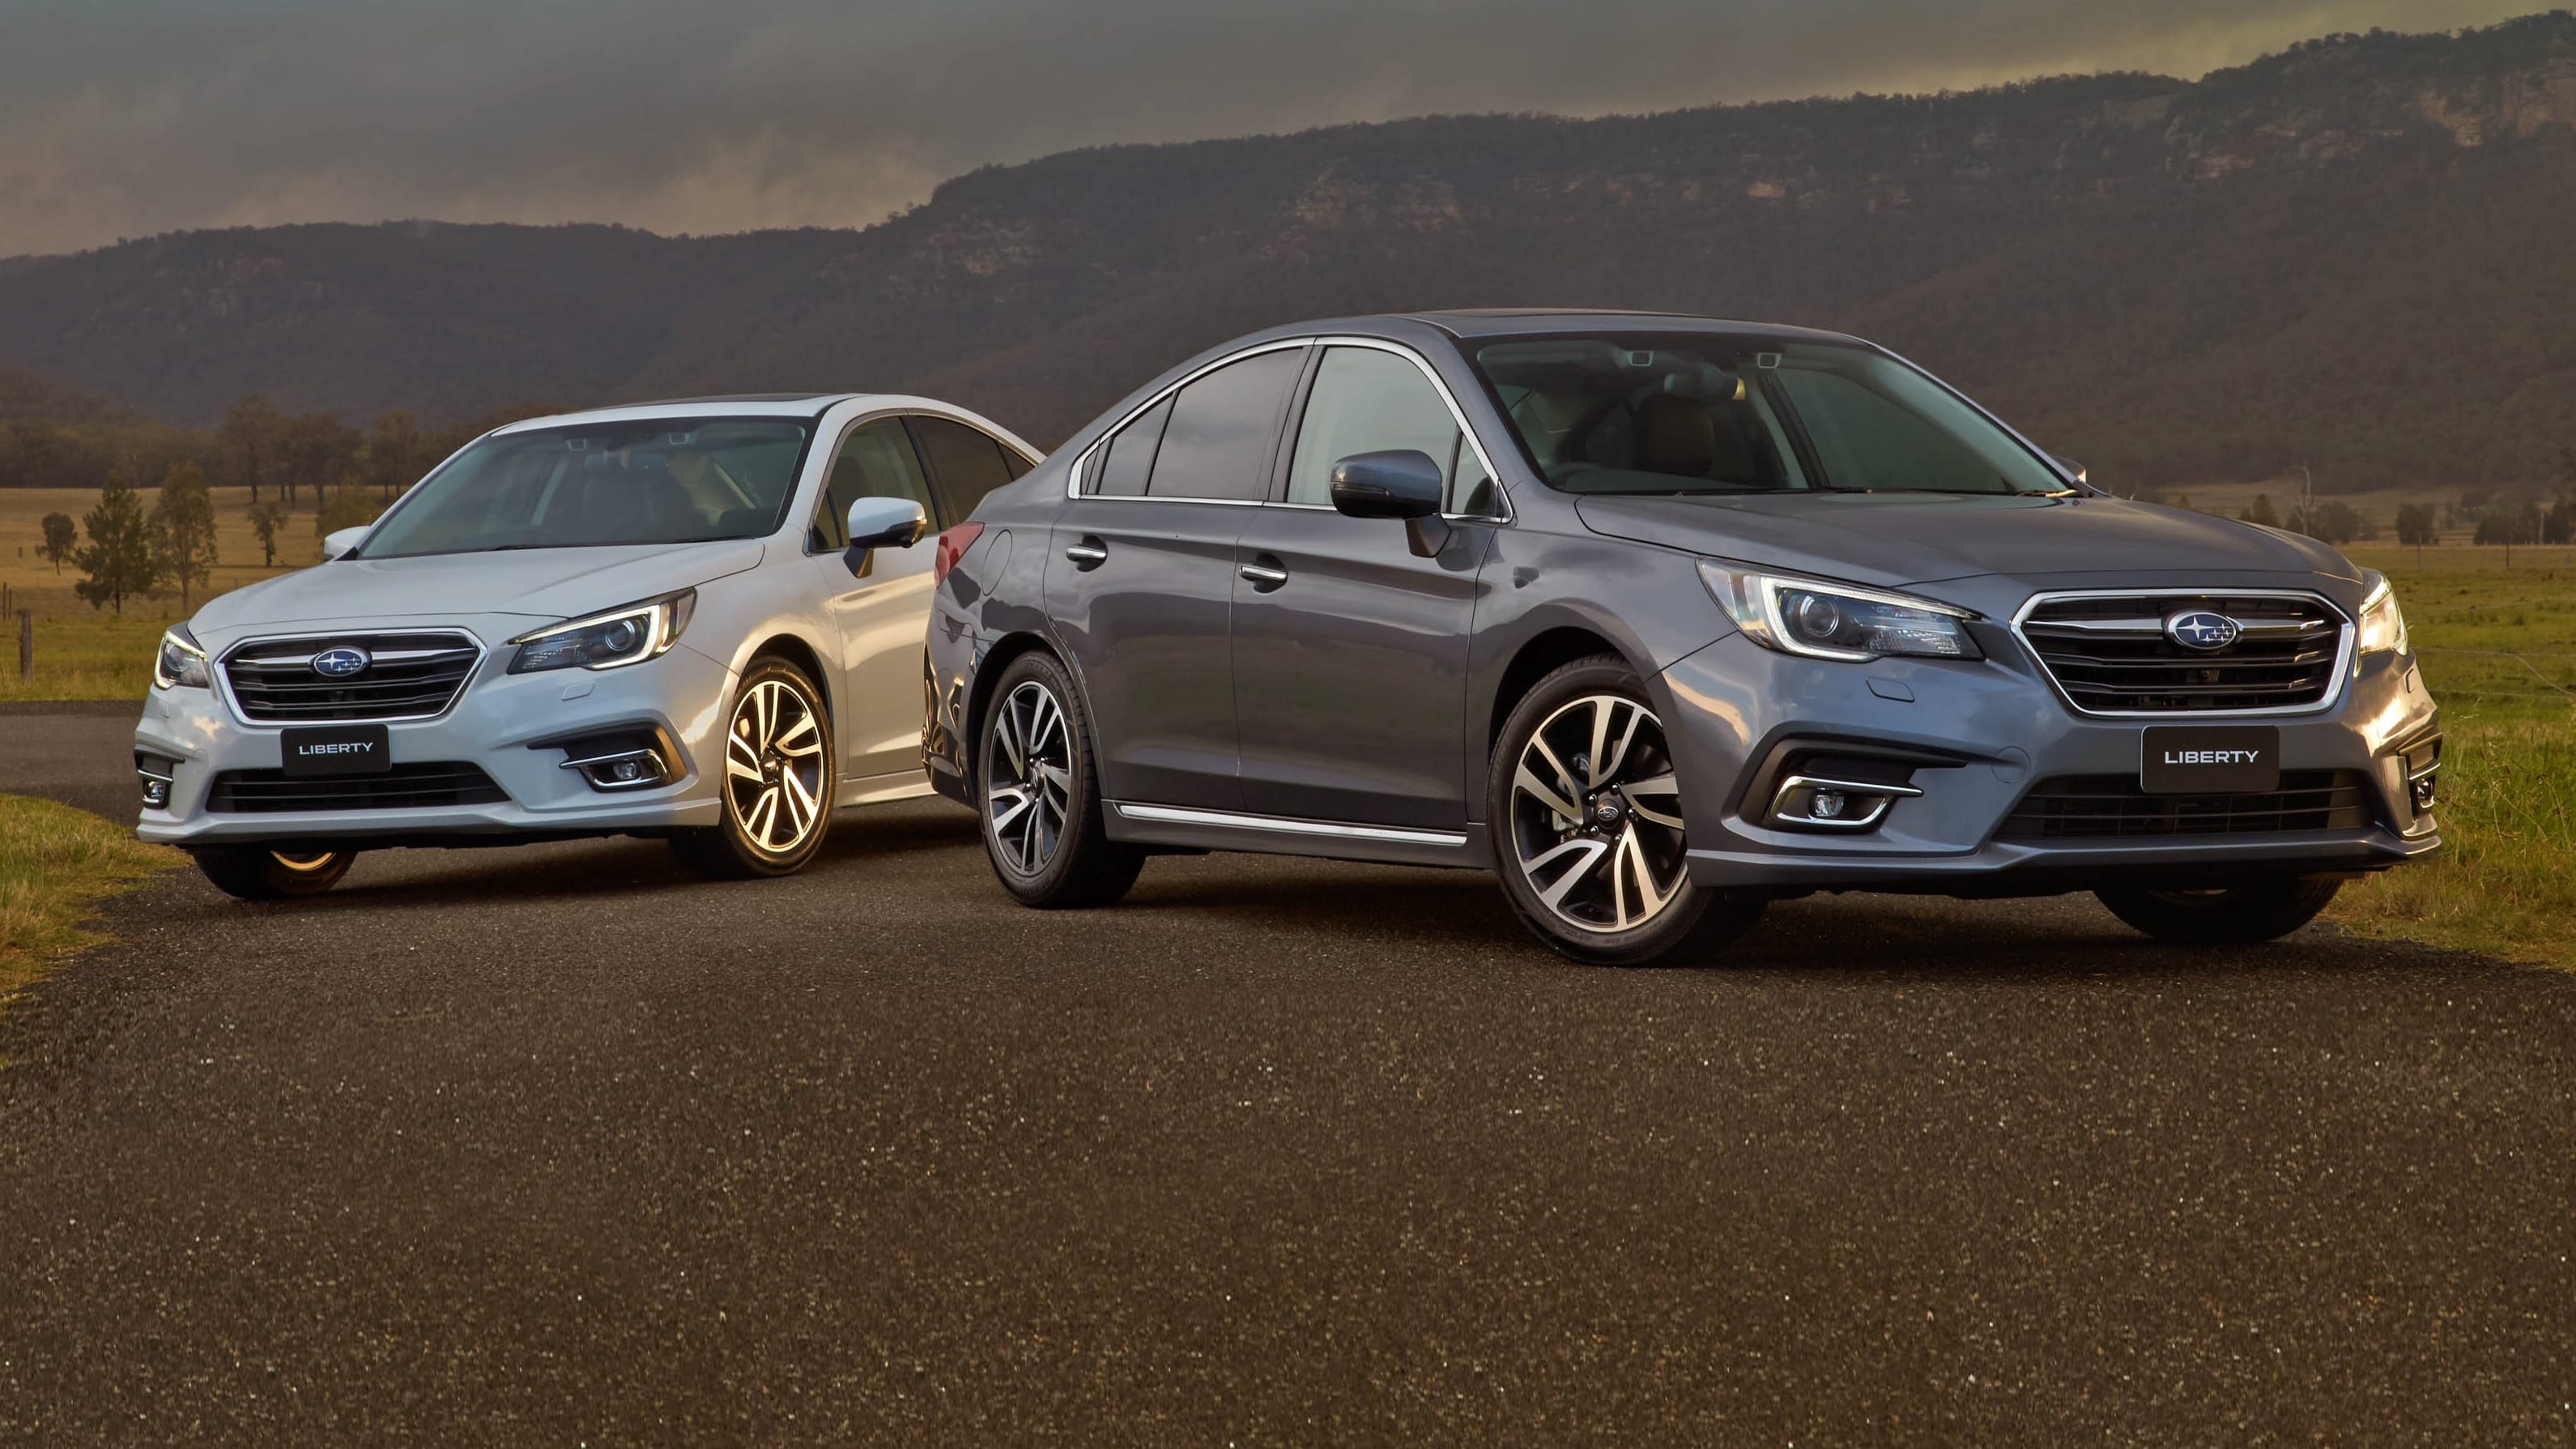 Subaru Liberty axed from Australian line-up, Outback safe